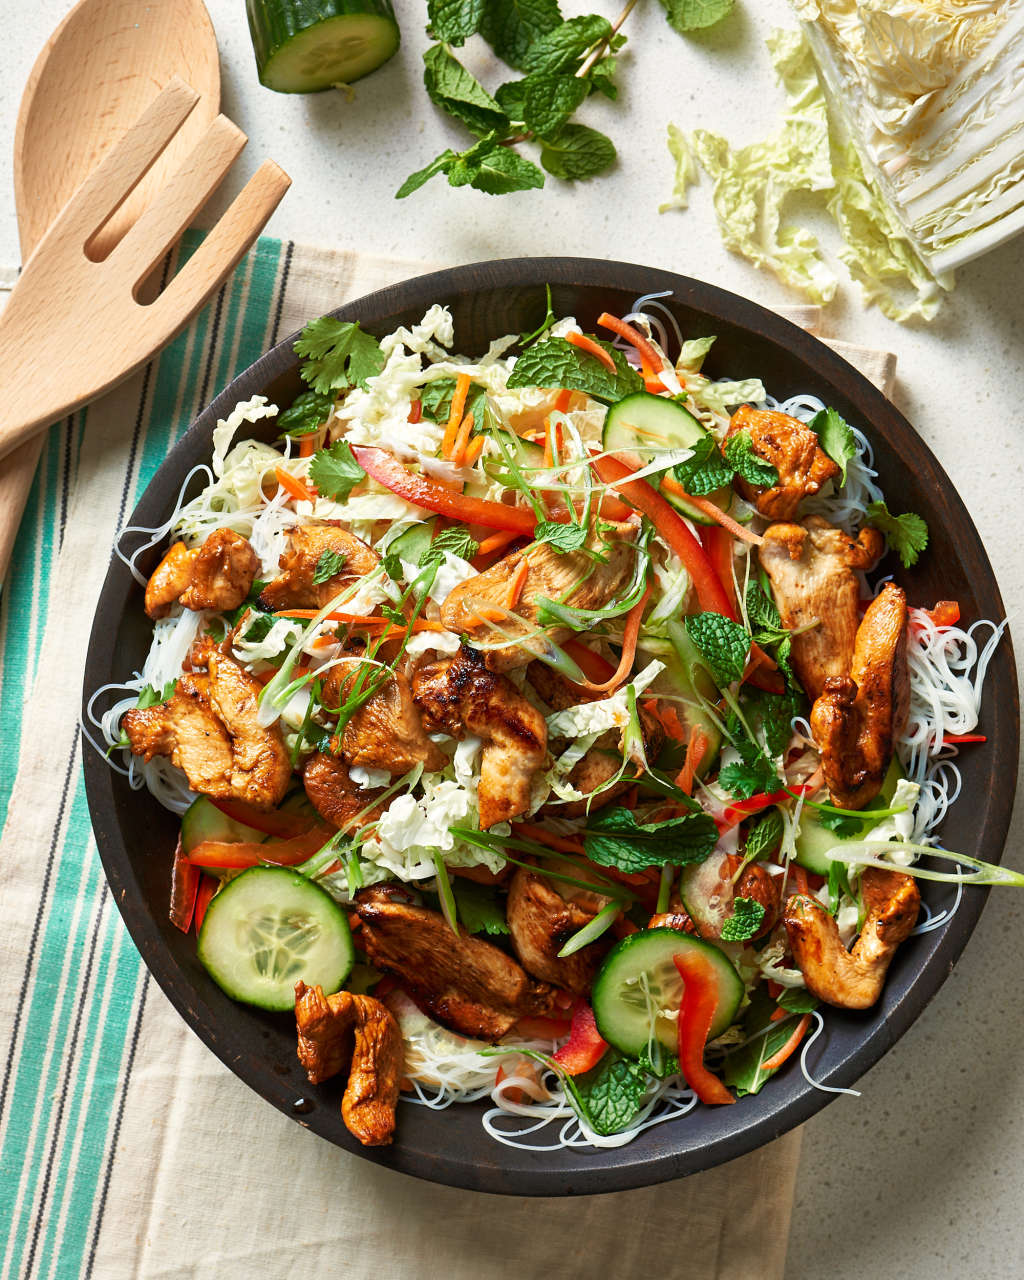 Make This Vietnamese-Style Chicken Salad the Night Before